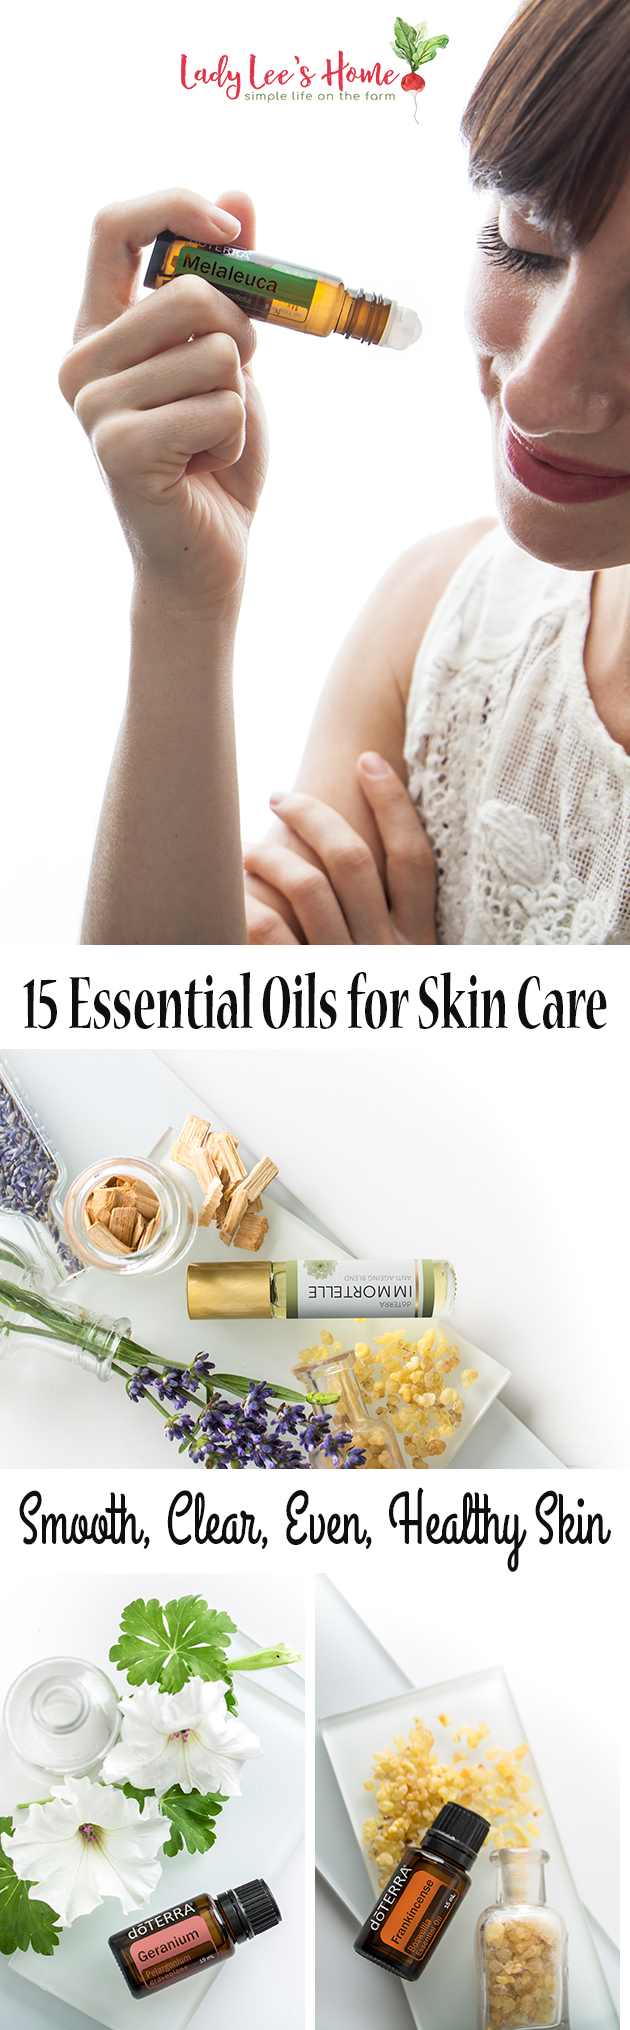 Let's go over 15 essential oils for skin care. These oils will support a smooth, clear, even, and healthy skin. They'll keep your skin rejuvenated and young-looking.